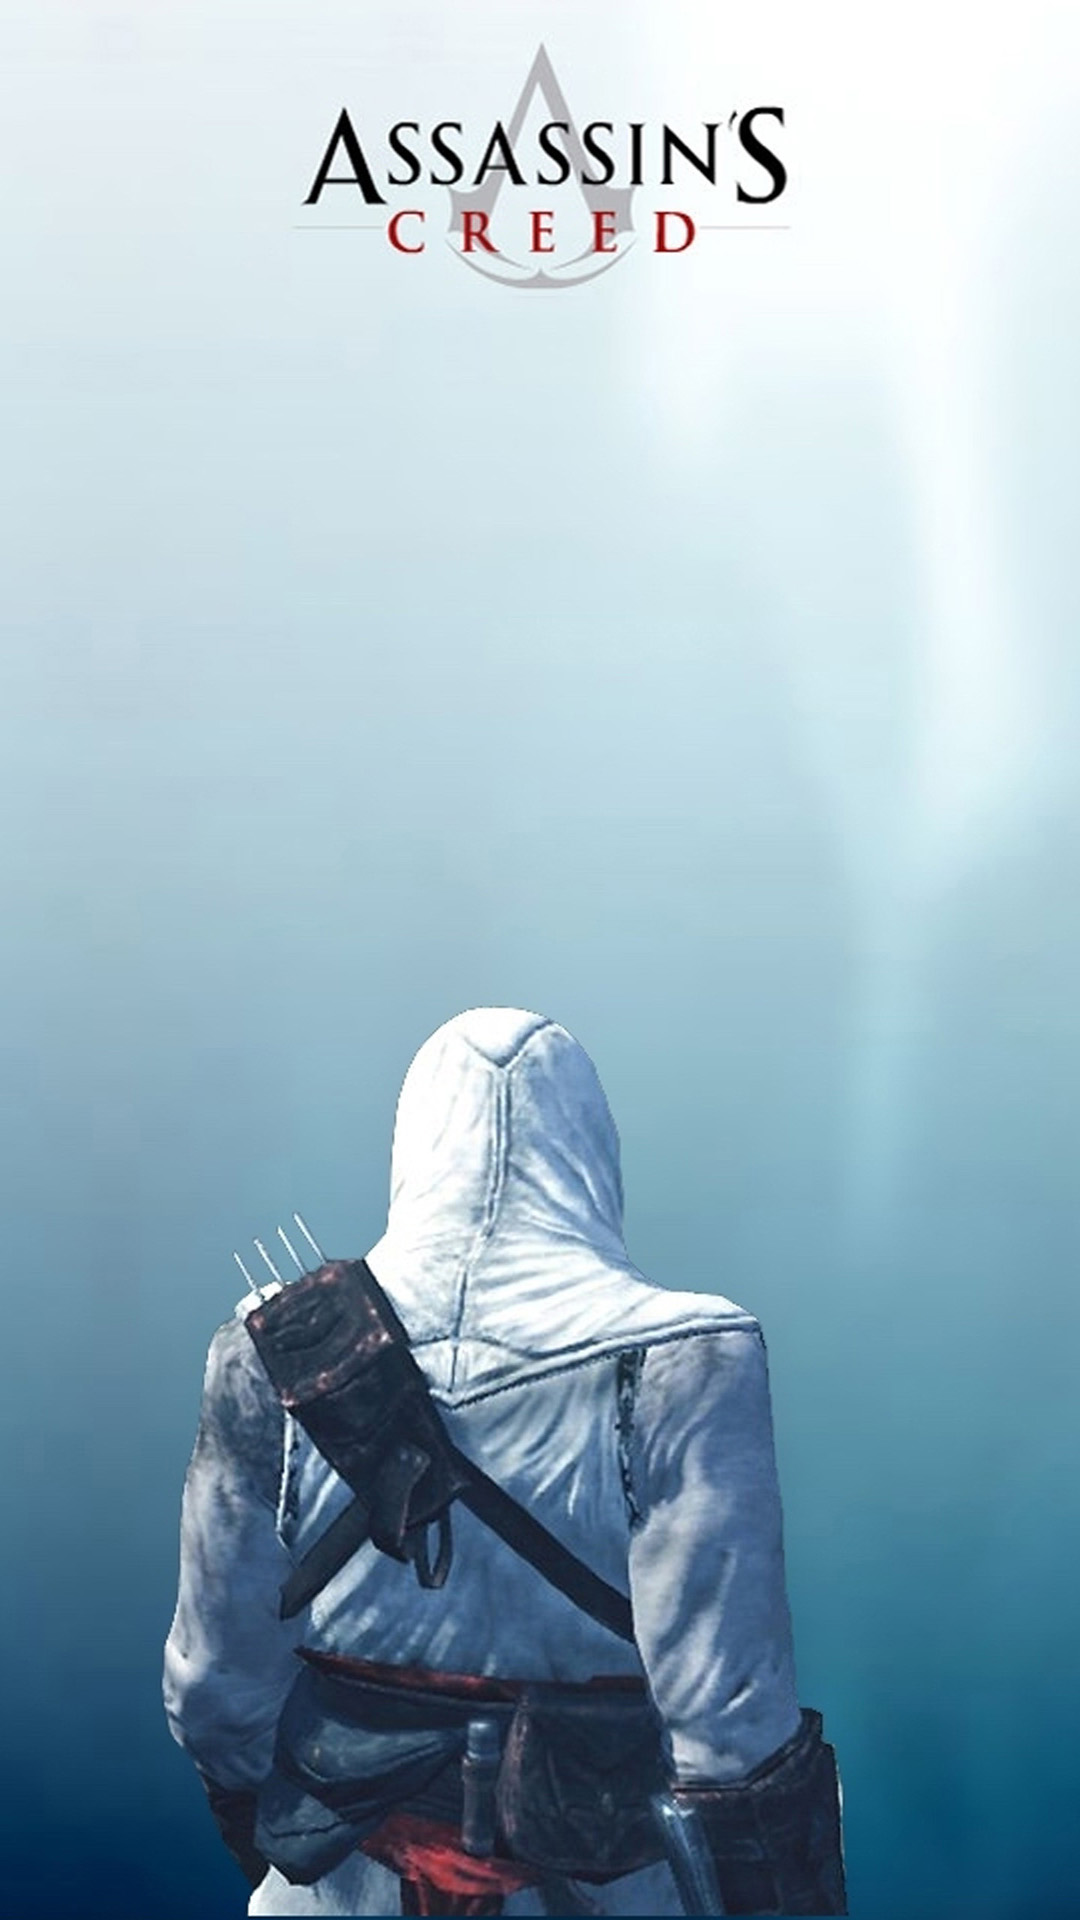 Wallpaper Hd For Mobile Free Download Animated Iphone 6 Plus Assassins Creed 02 Hd Wallpaper